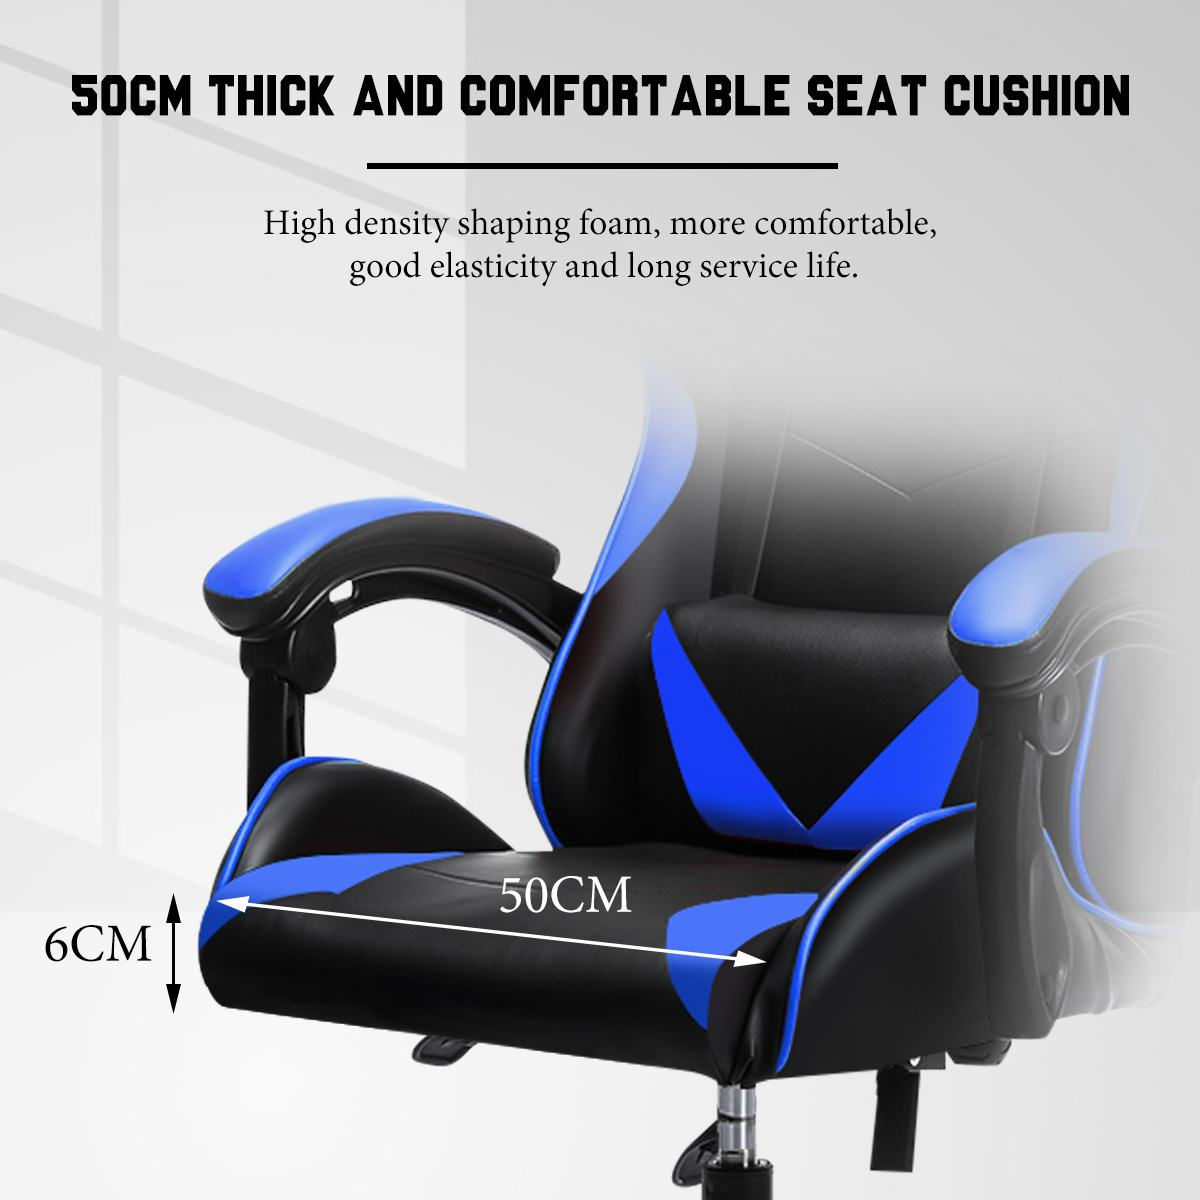 H9b0692e9071d4302b19da4aa9aa90c30G - Office Gaming Chair with Footrest Ergonomic Office Chairs Adjustable Swivel Leather High Back Computer Desk Chair with Headrest